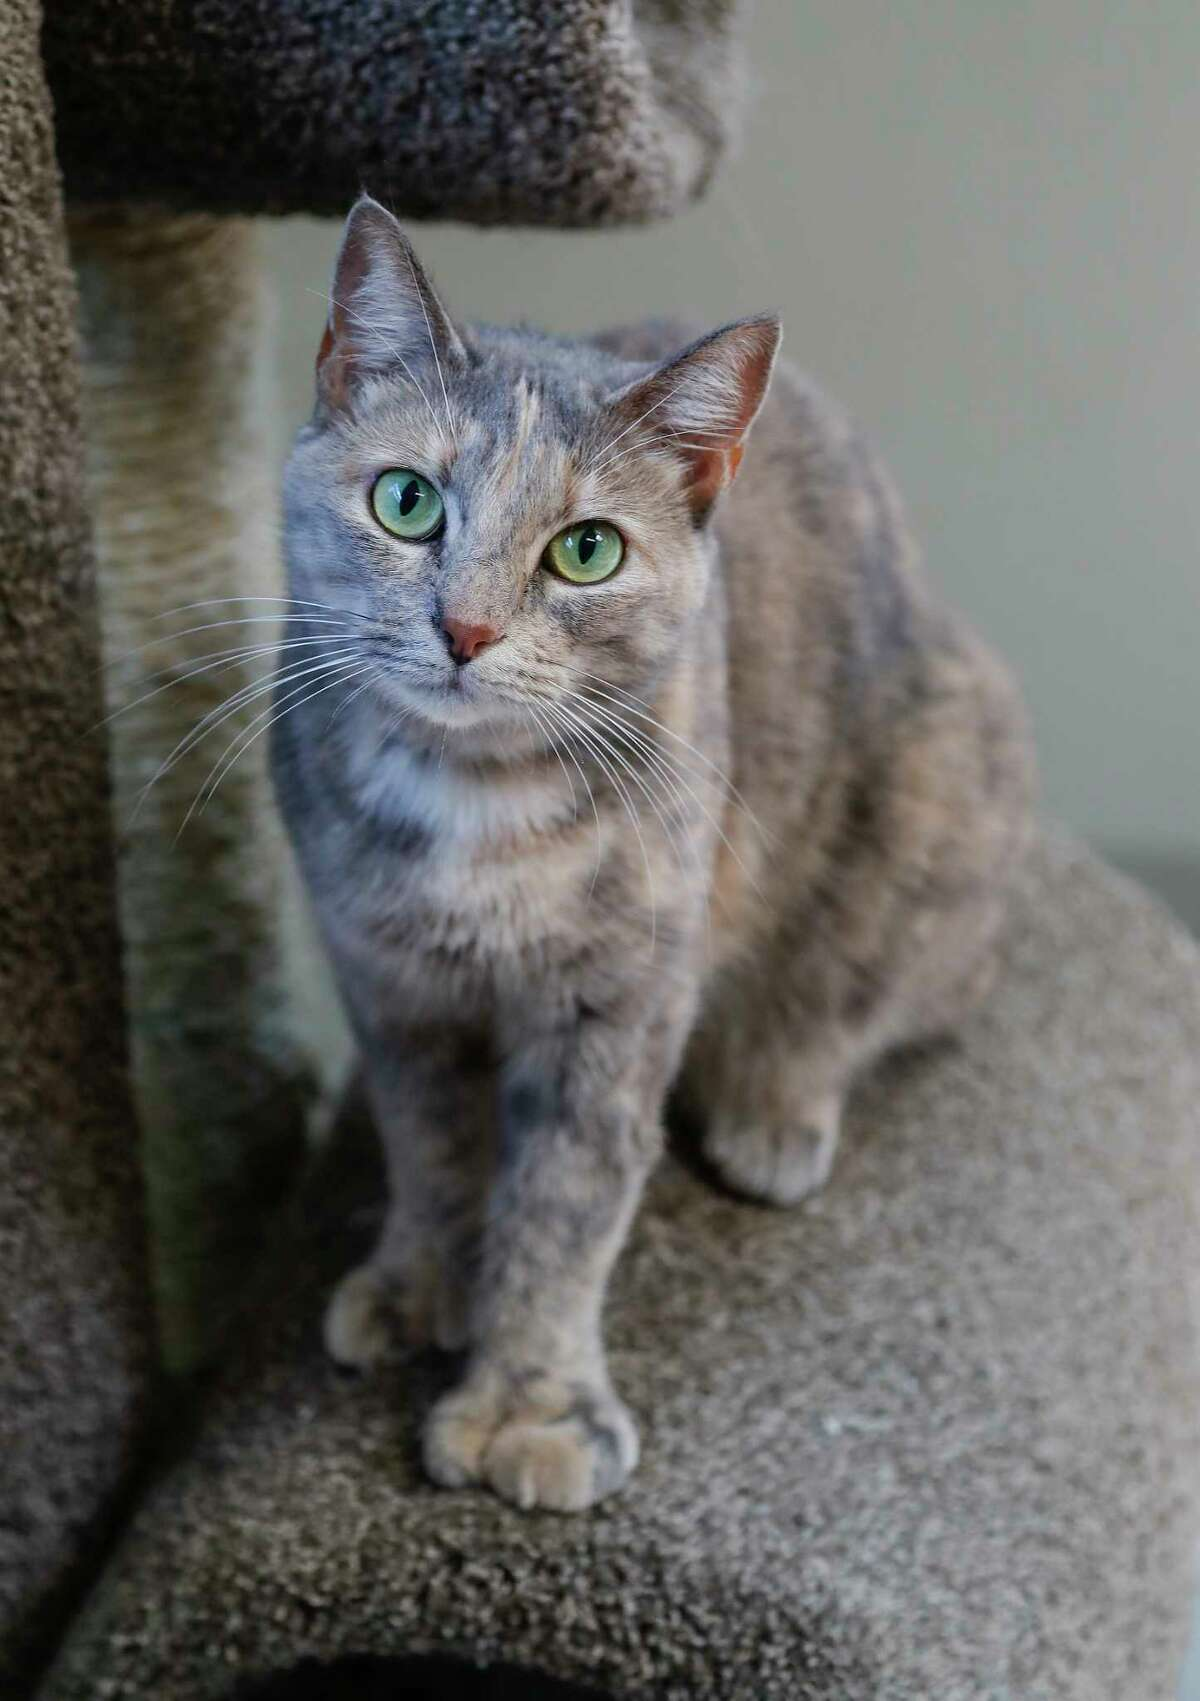 Lisa (ID: A1548721), is a 2-year-old, female tortie cat is available for adoption from BARC Animal Shelter. Photographed September 3, 2019, in Houston. Lisa was surrendered by her owner after moving in with a roommate who was allergic to cats. Lisa is a polydactyl cat, which means she was born with more toes than a normal cat.